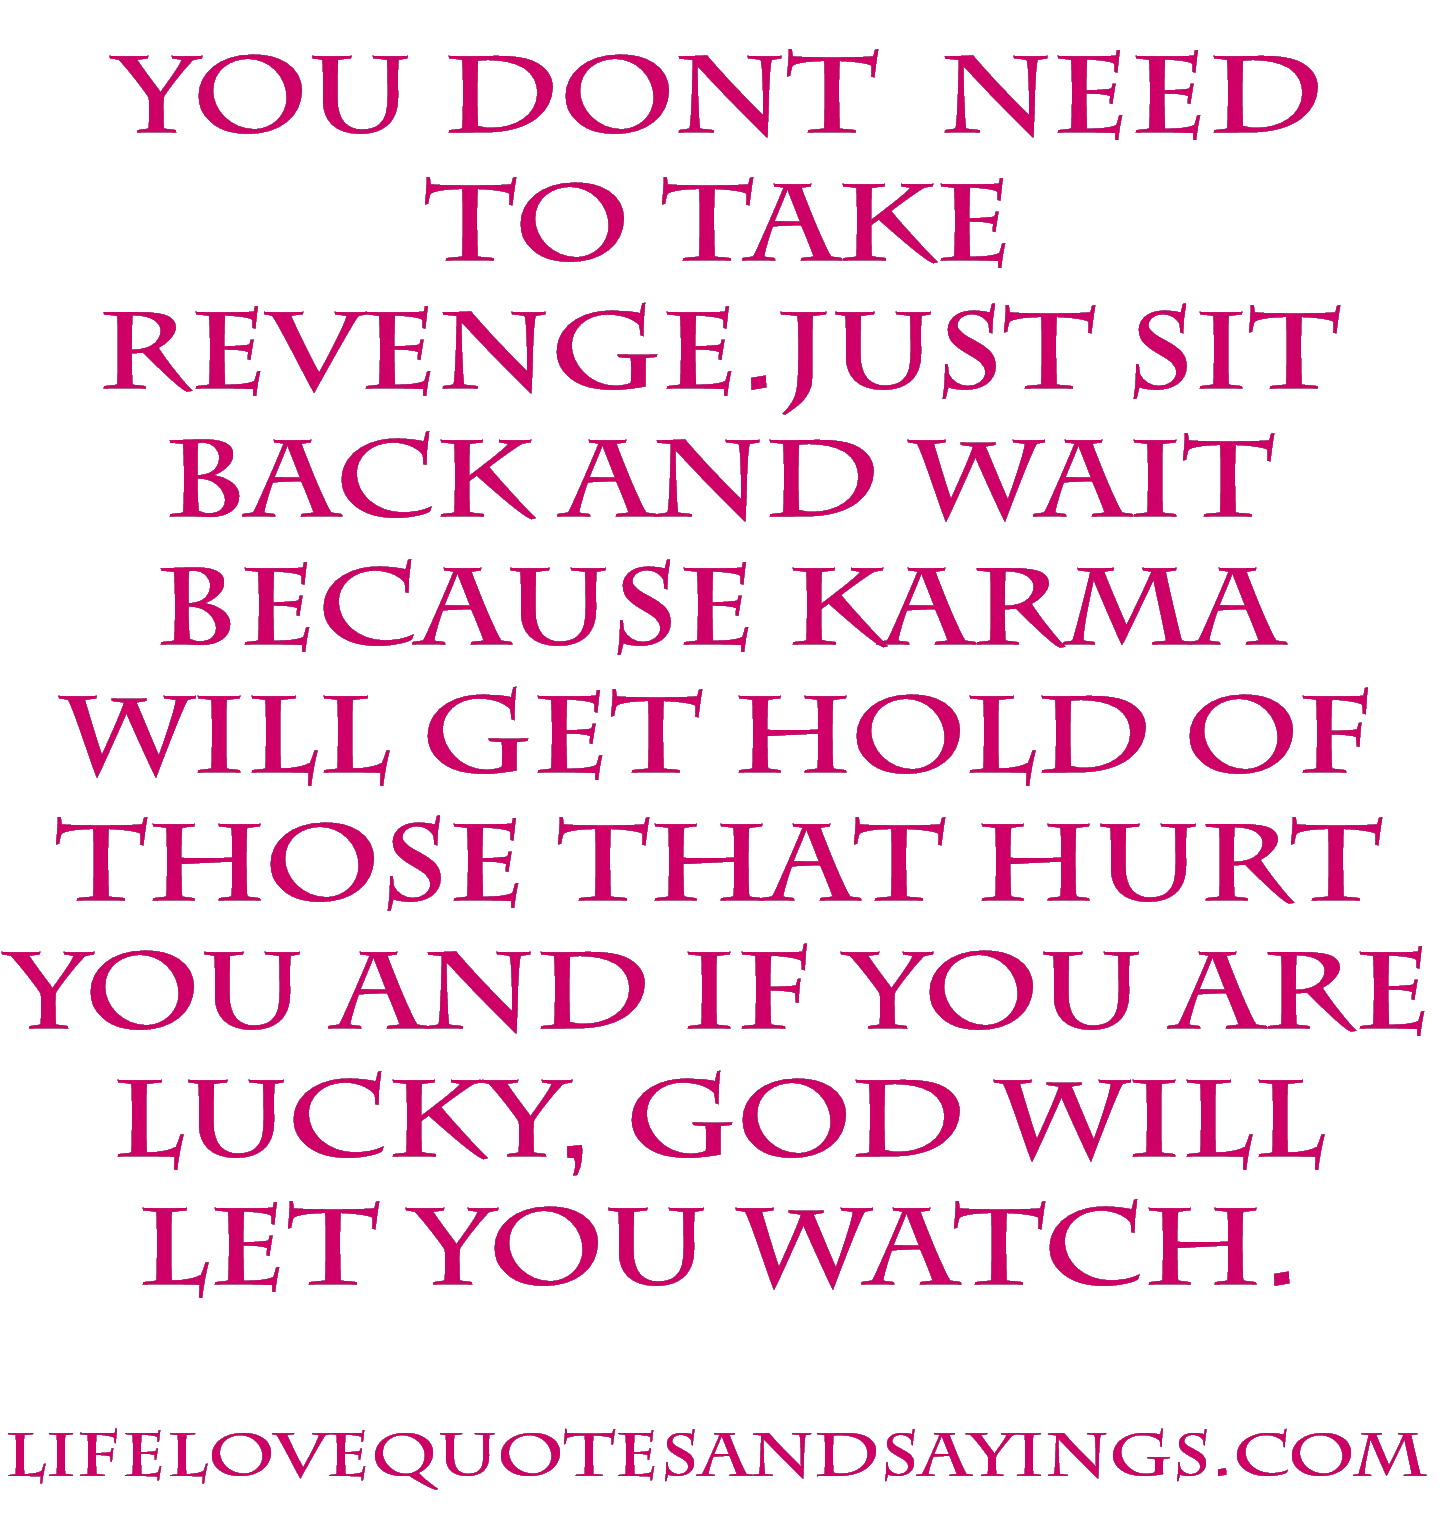 Karma quotes for mean people quotesgram for All about karma